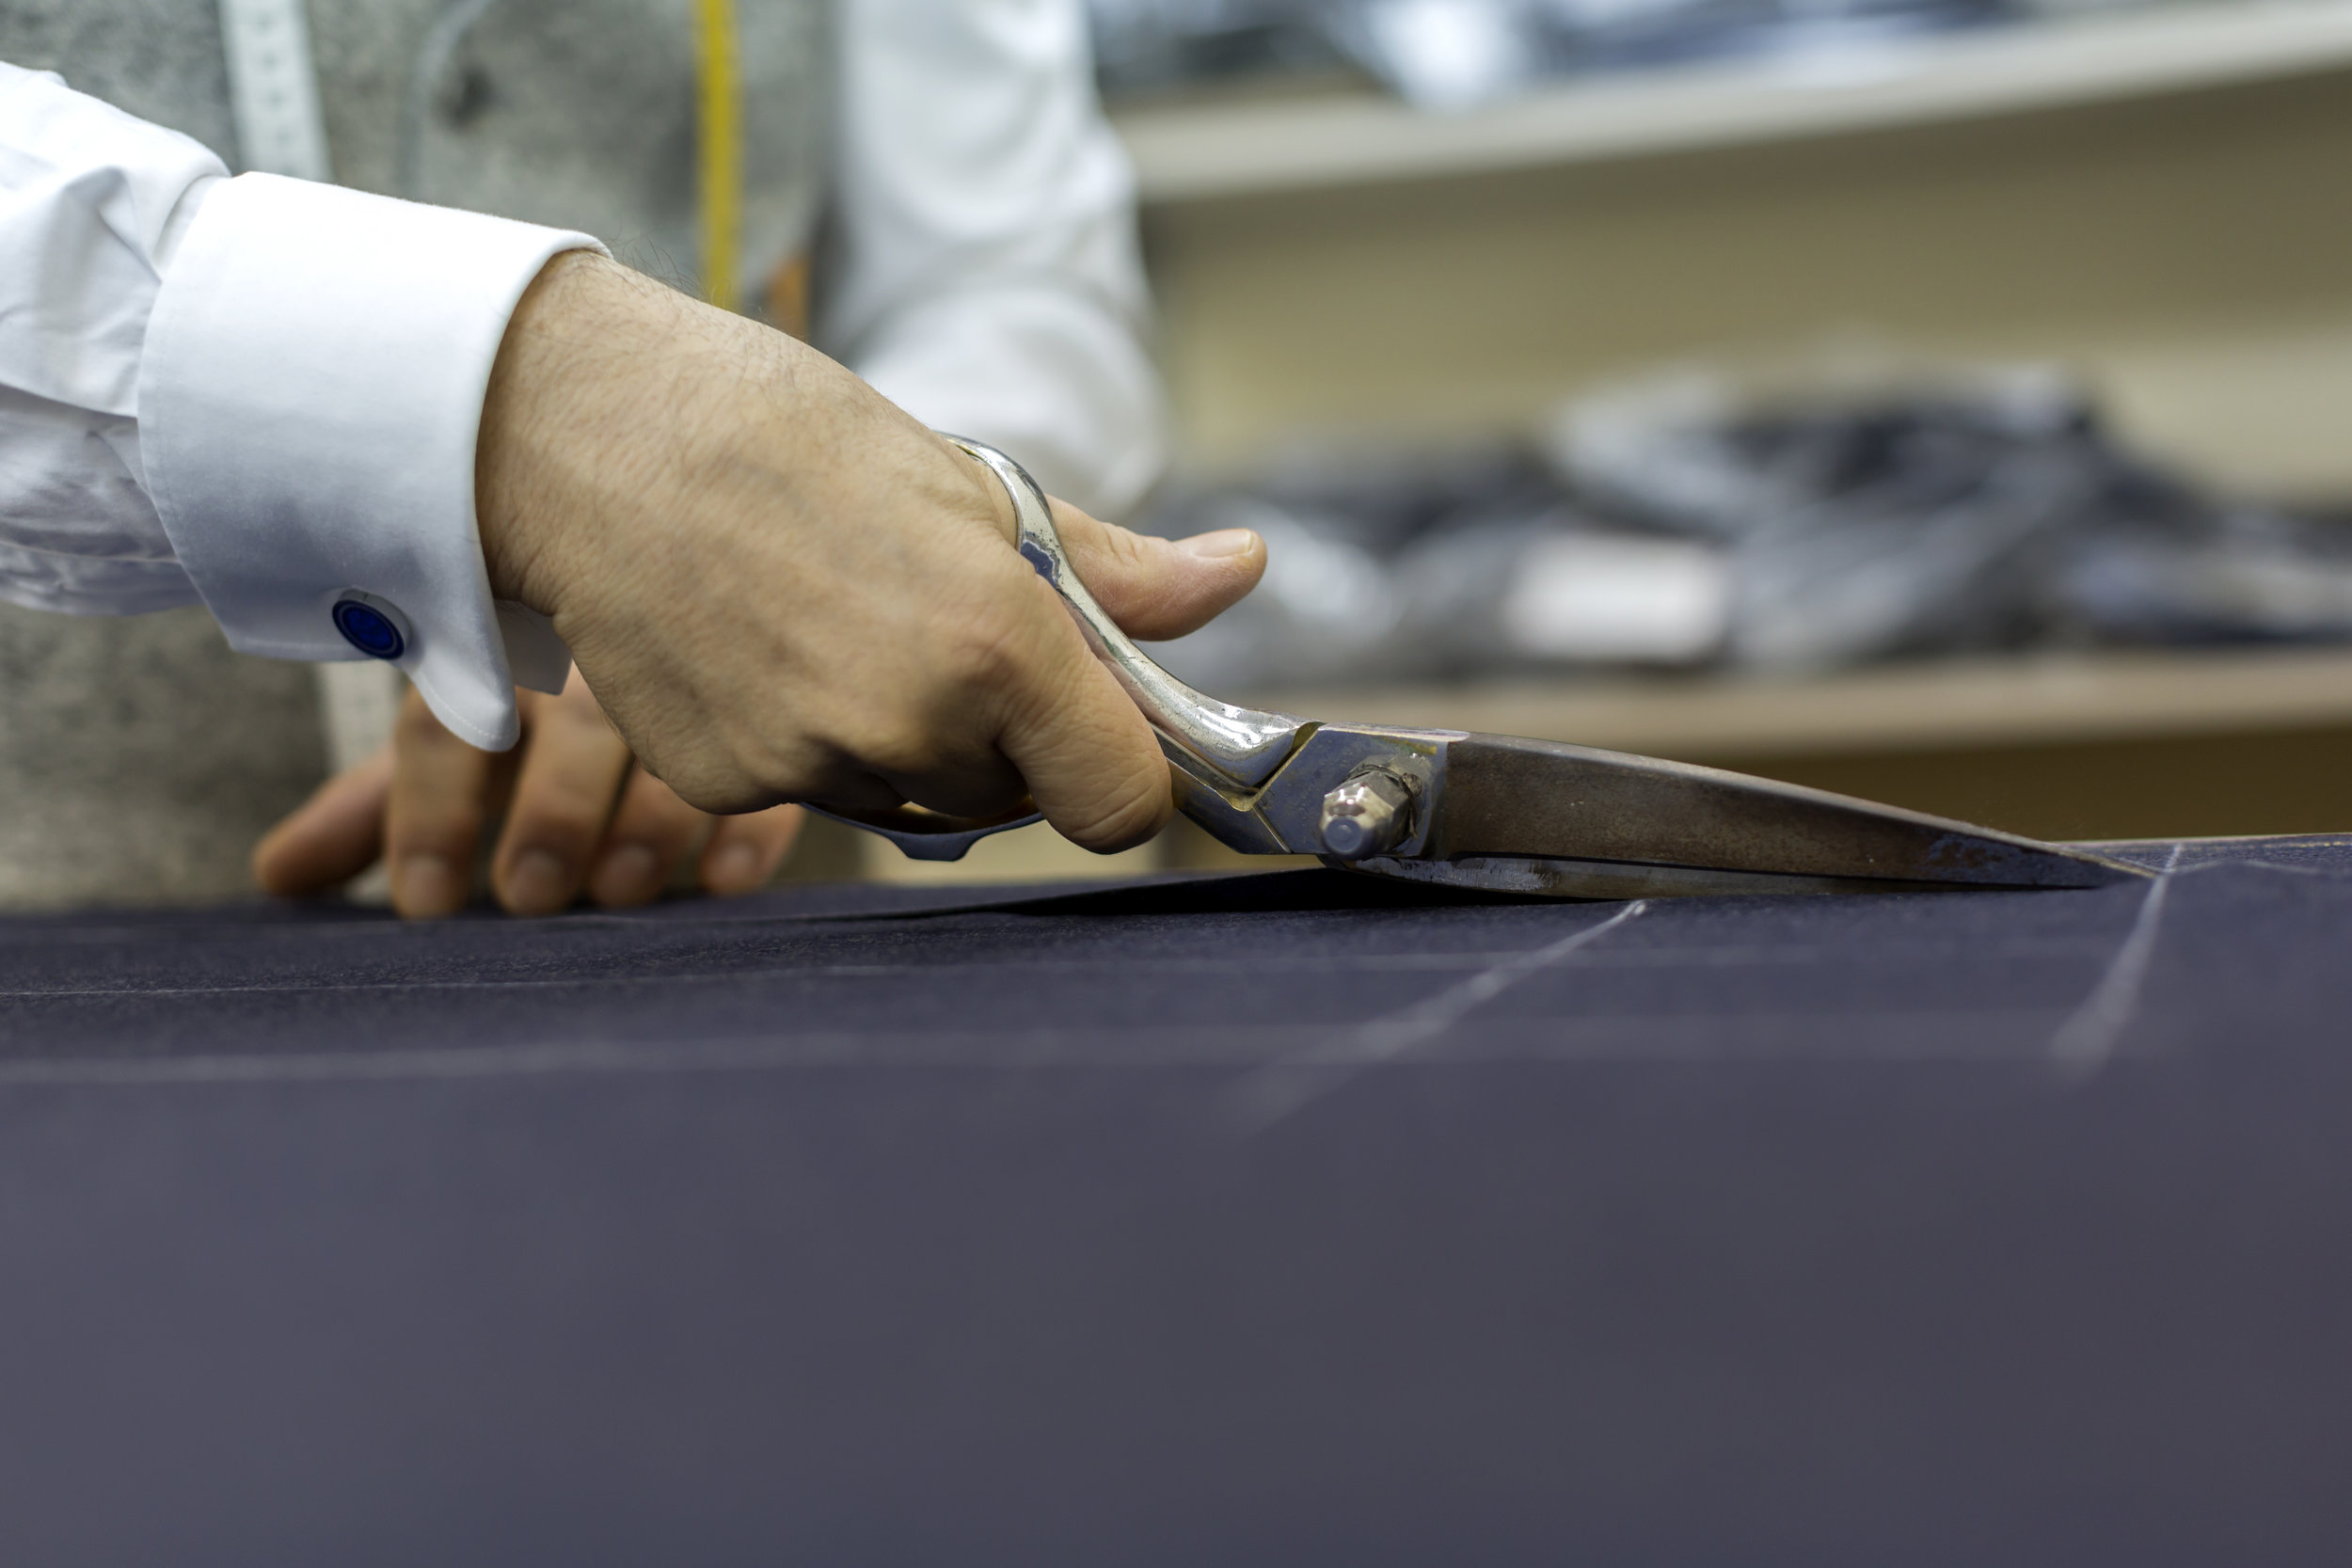 Hand cutting fabric with scissors